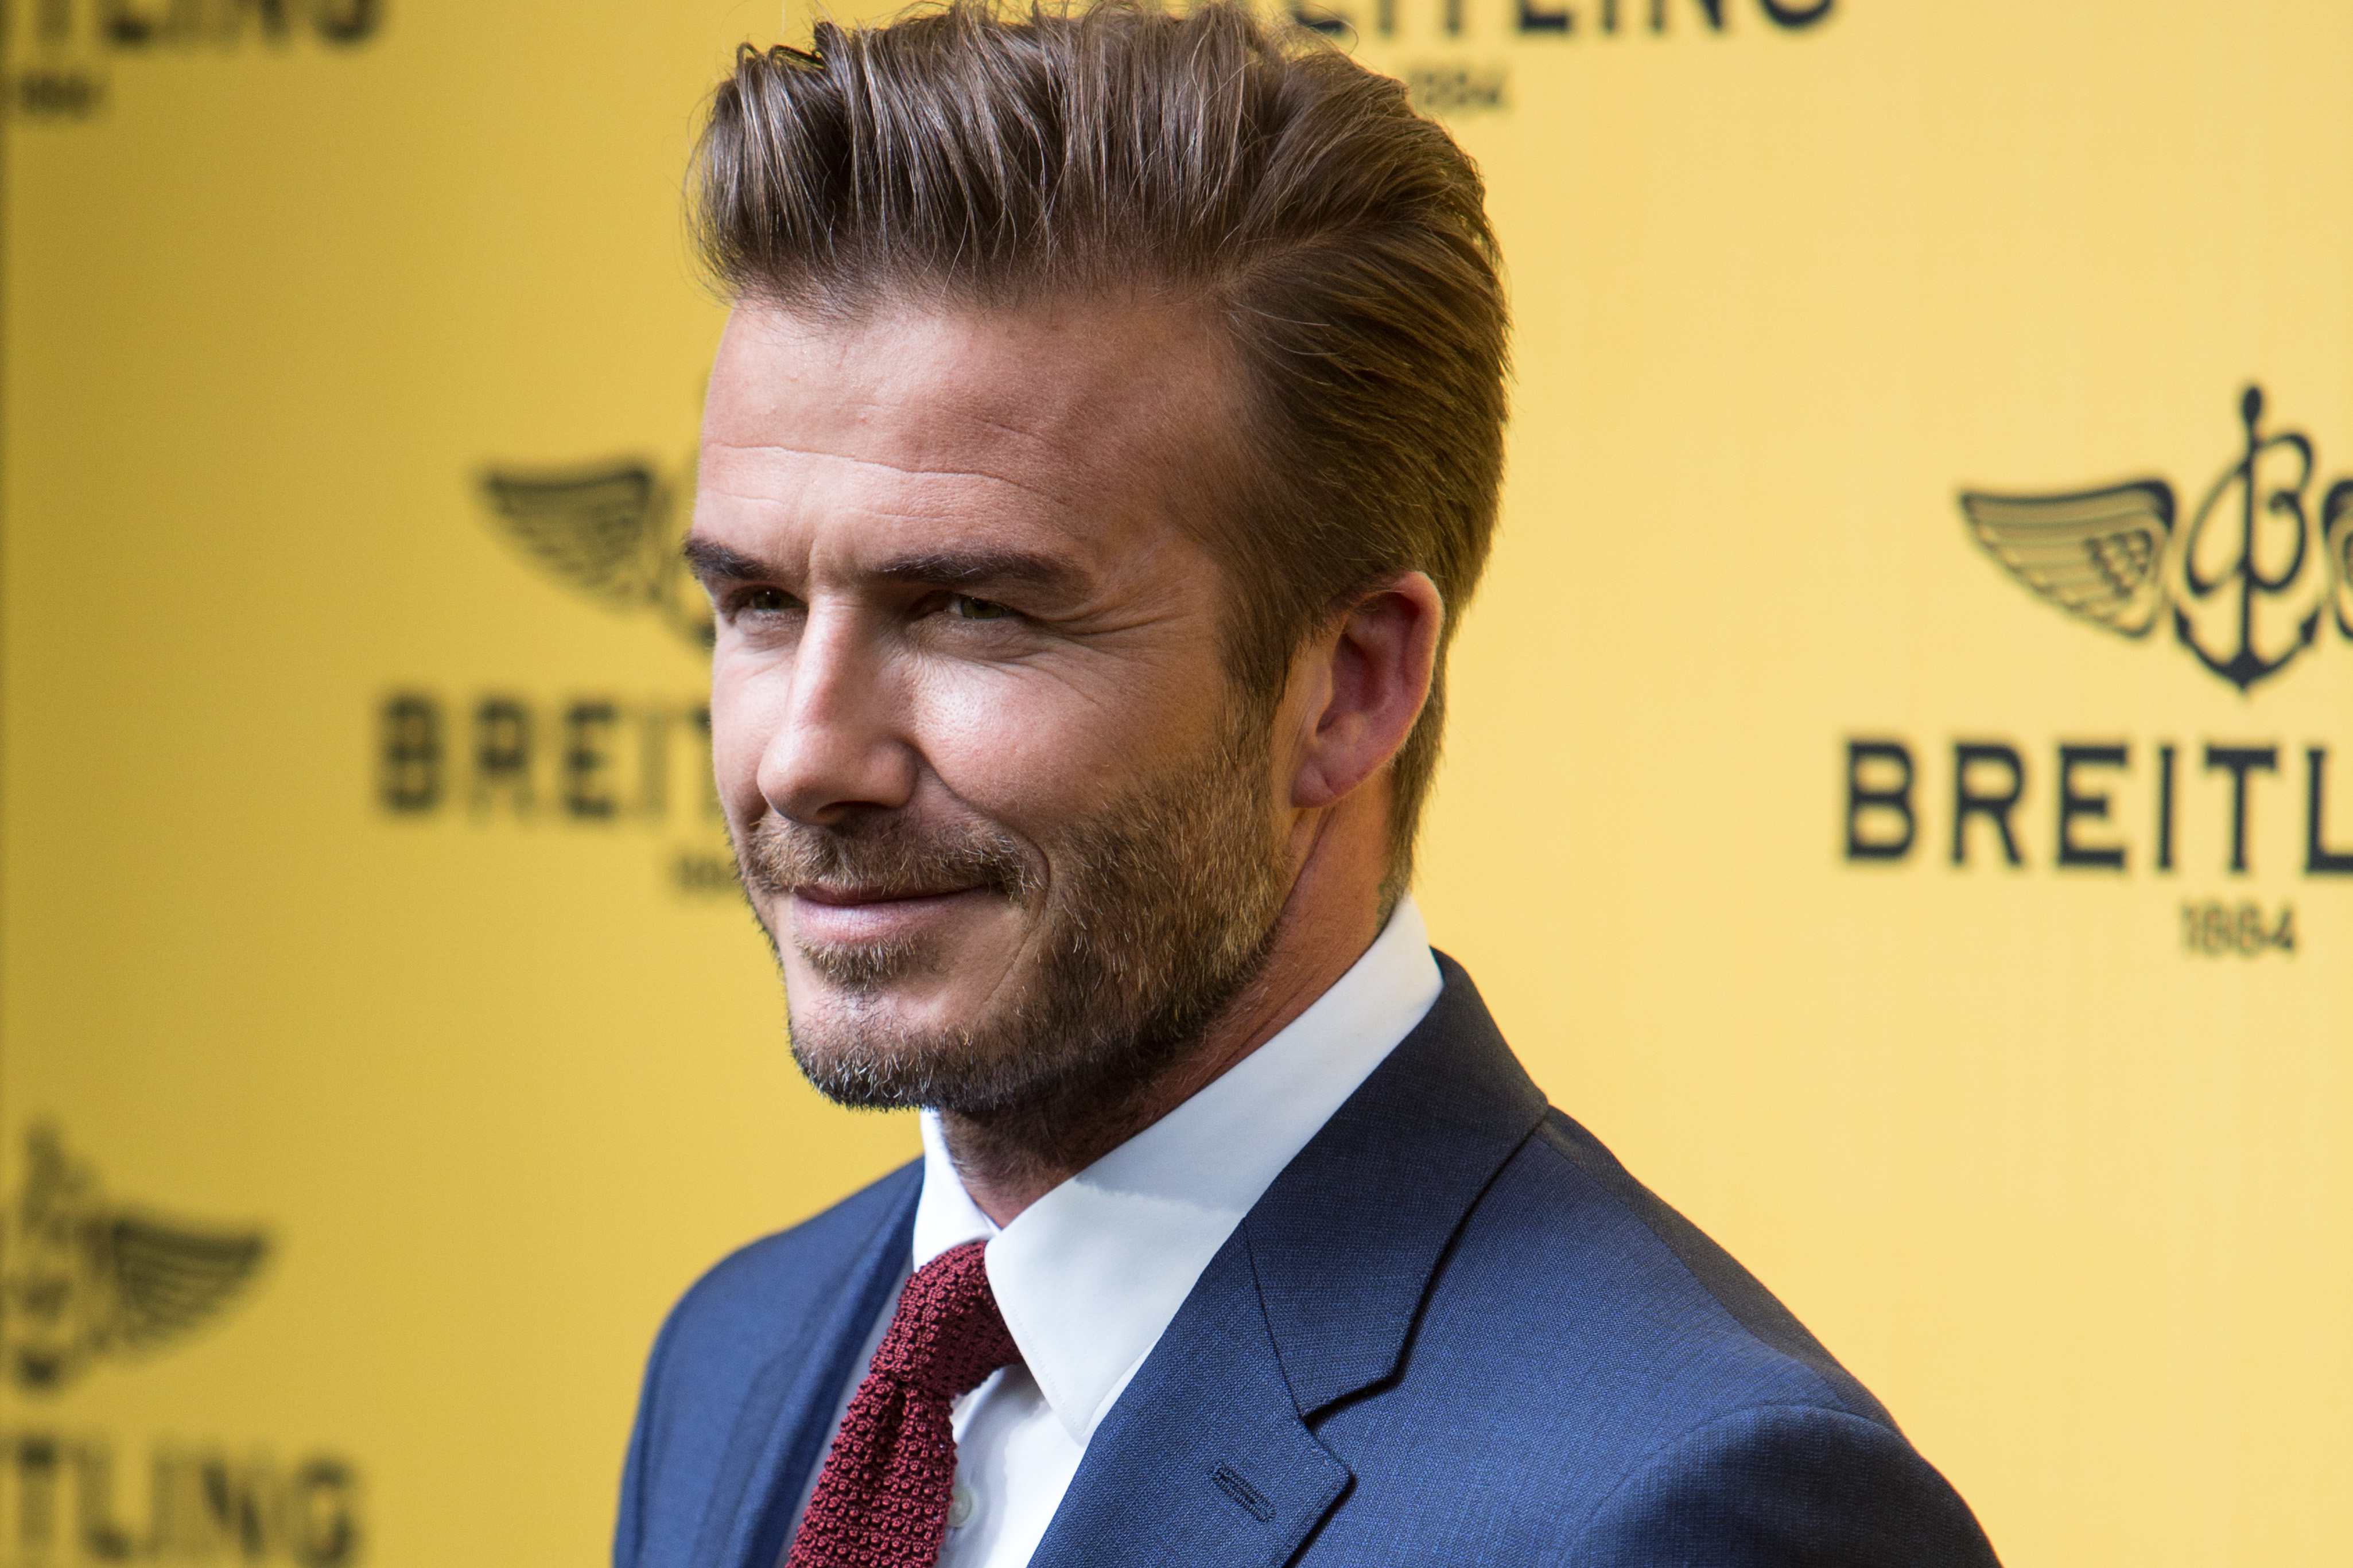 Buy Alive man sexiest david beckham picture trends